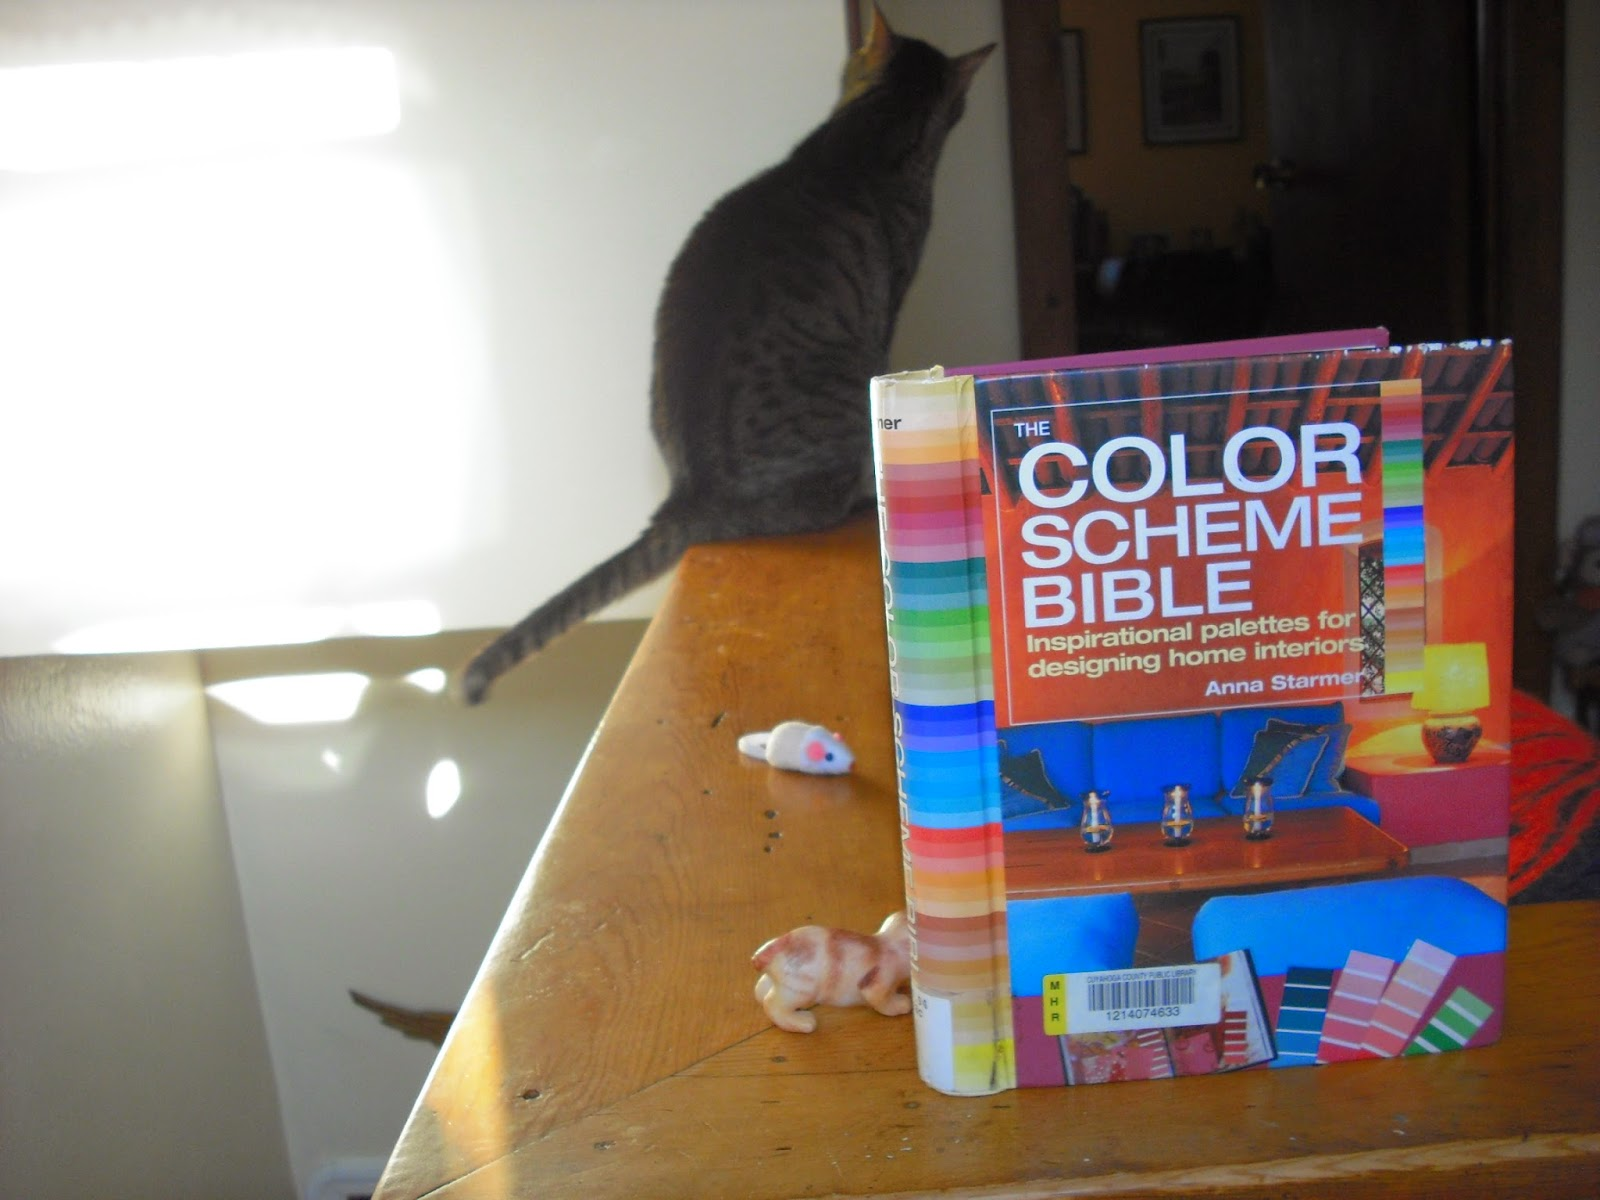 Book color scheme -  The Color Scheme Bible By Anna Starmer